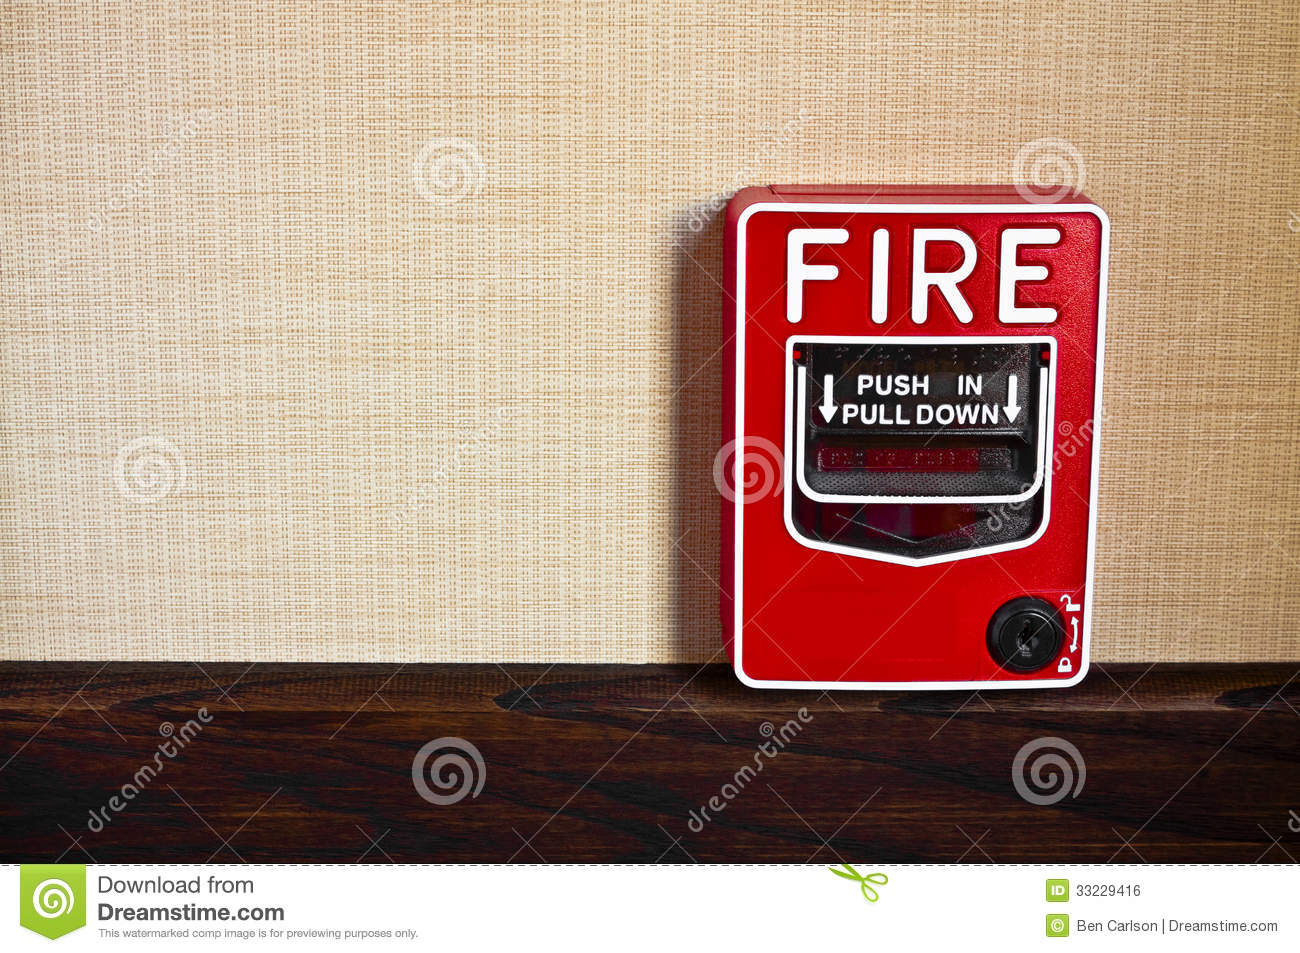 2 stage manual fire alarm box